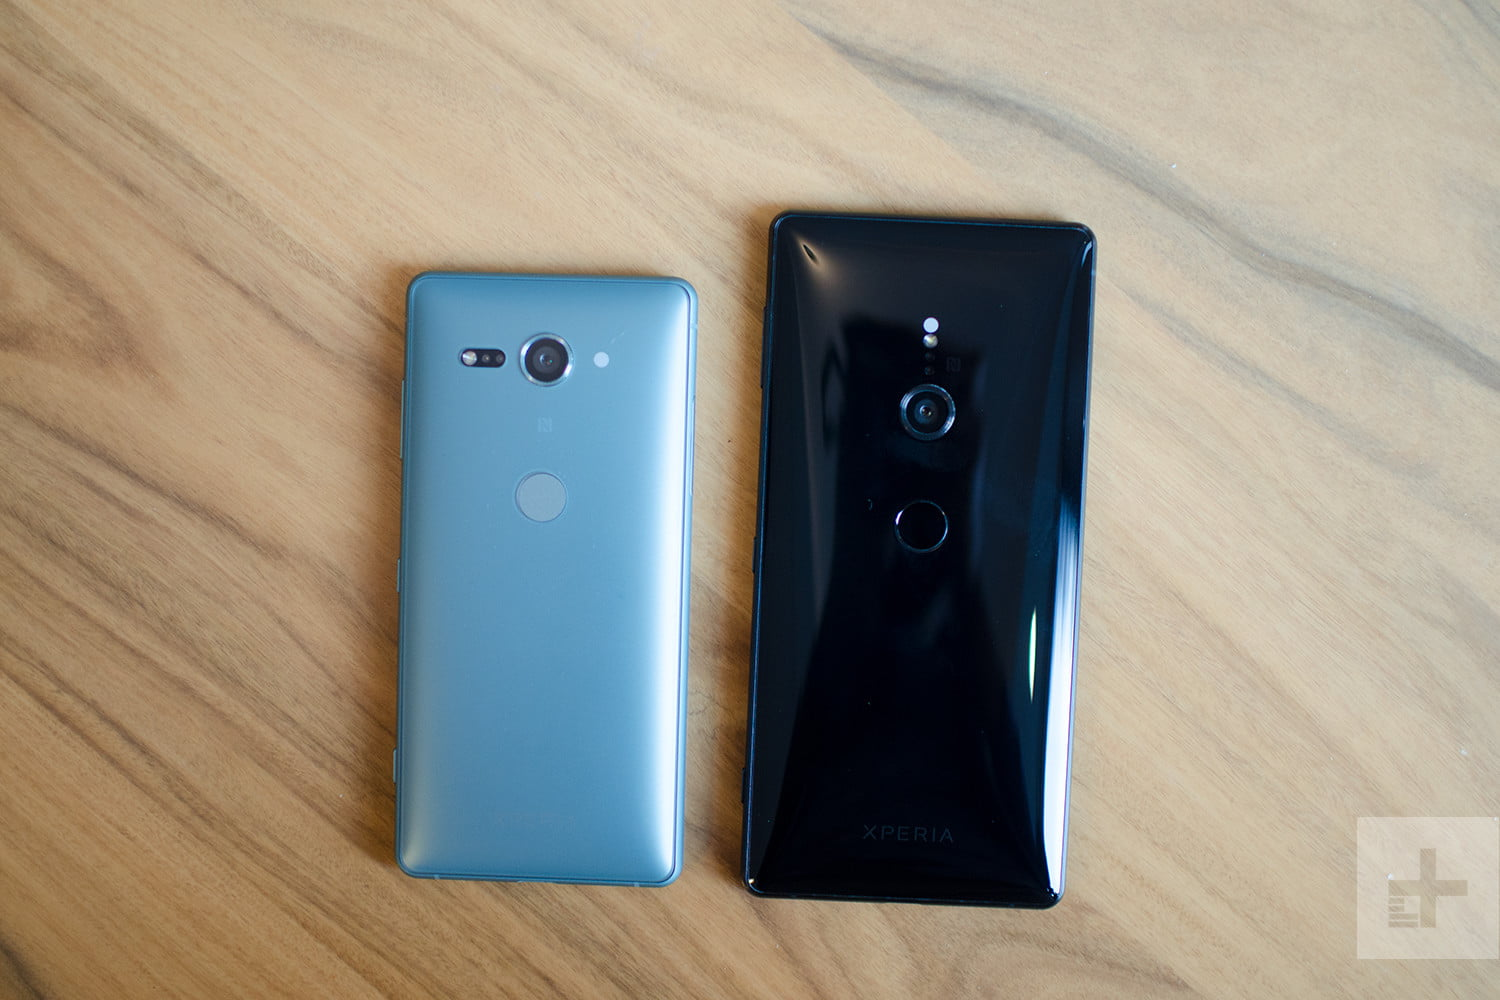 Sony Xperia XZ2 and XZ2 Compact Hands-on Review | Digital